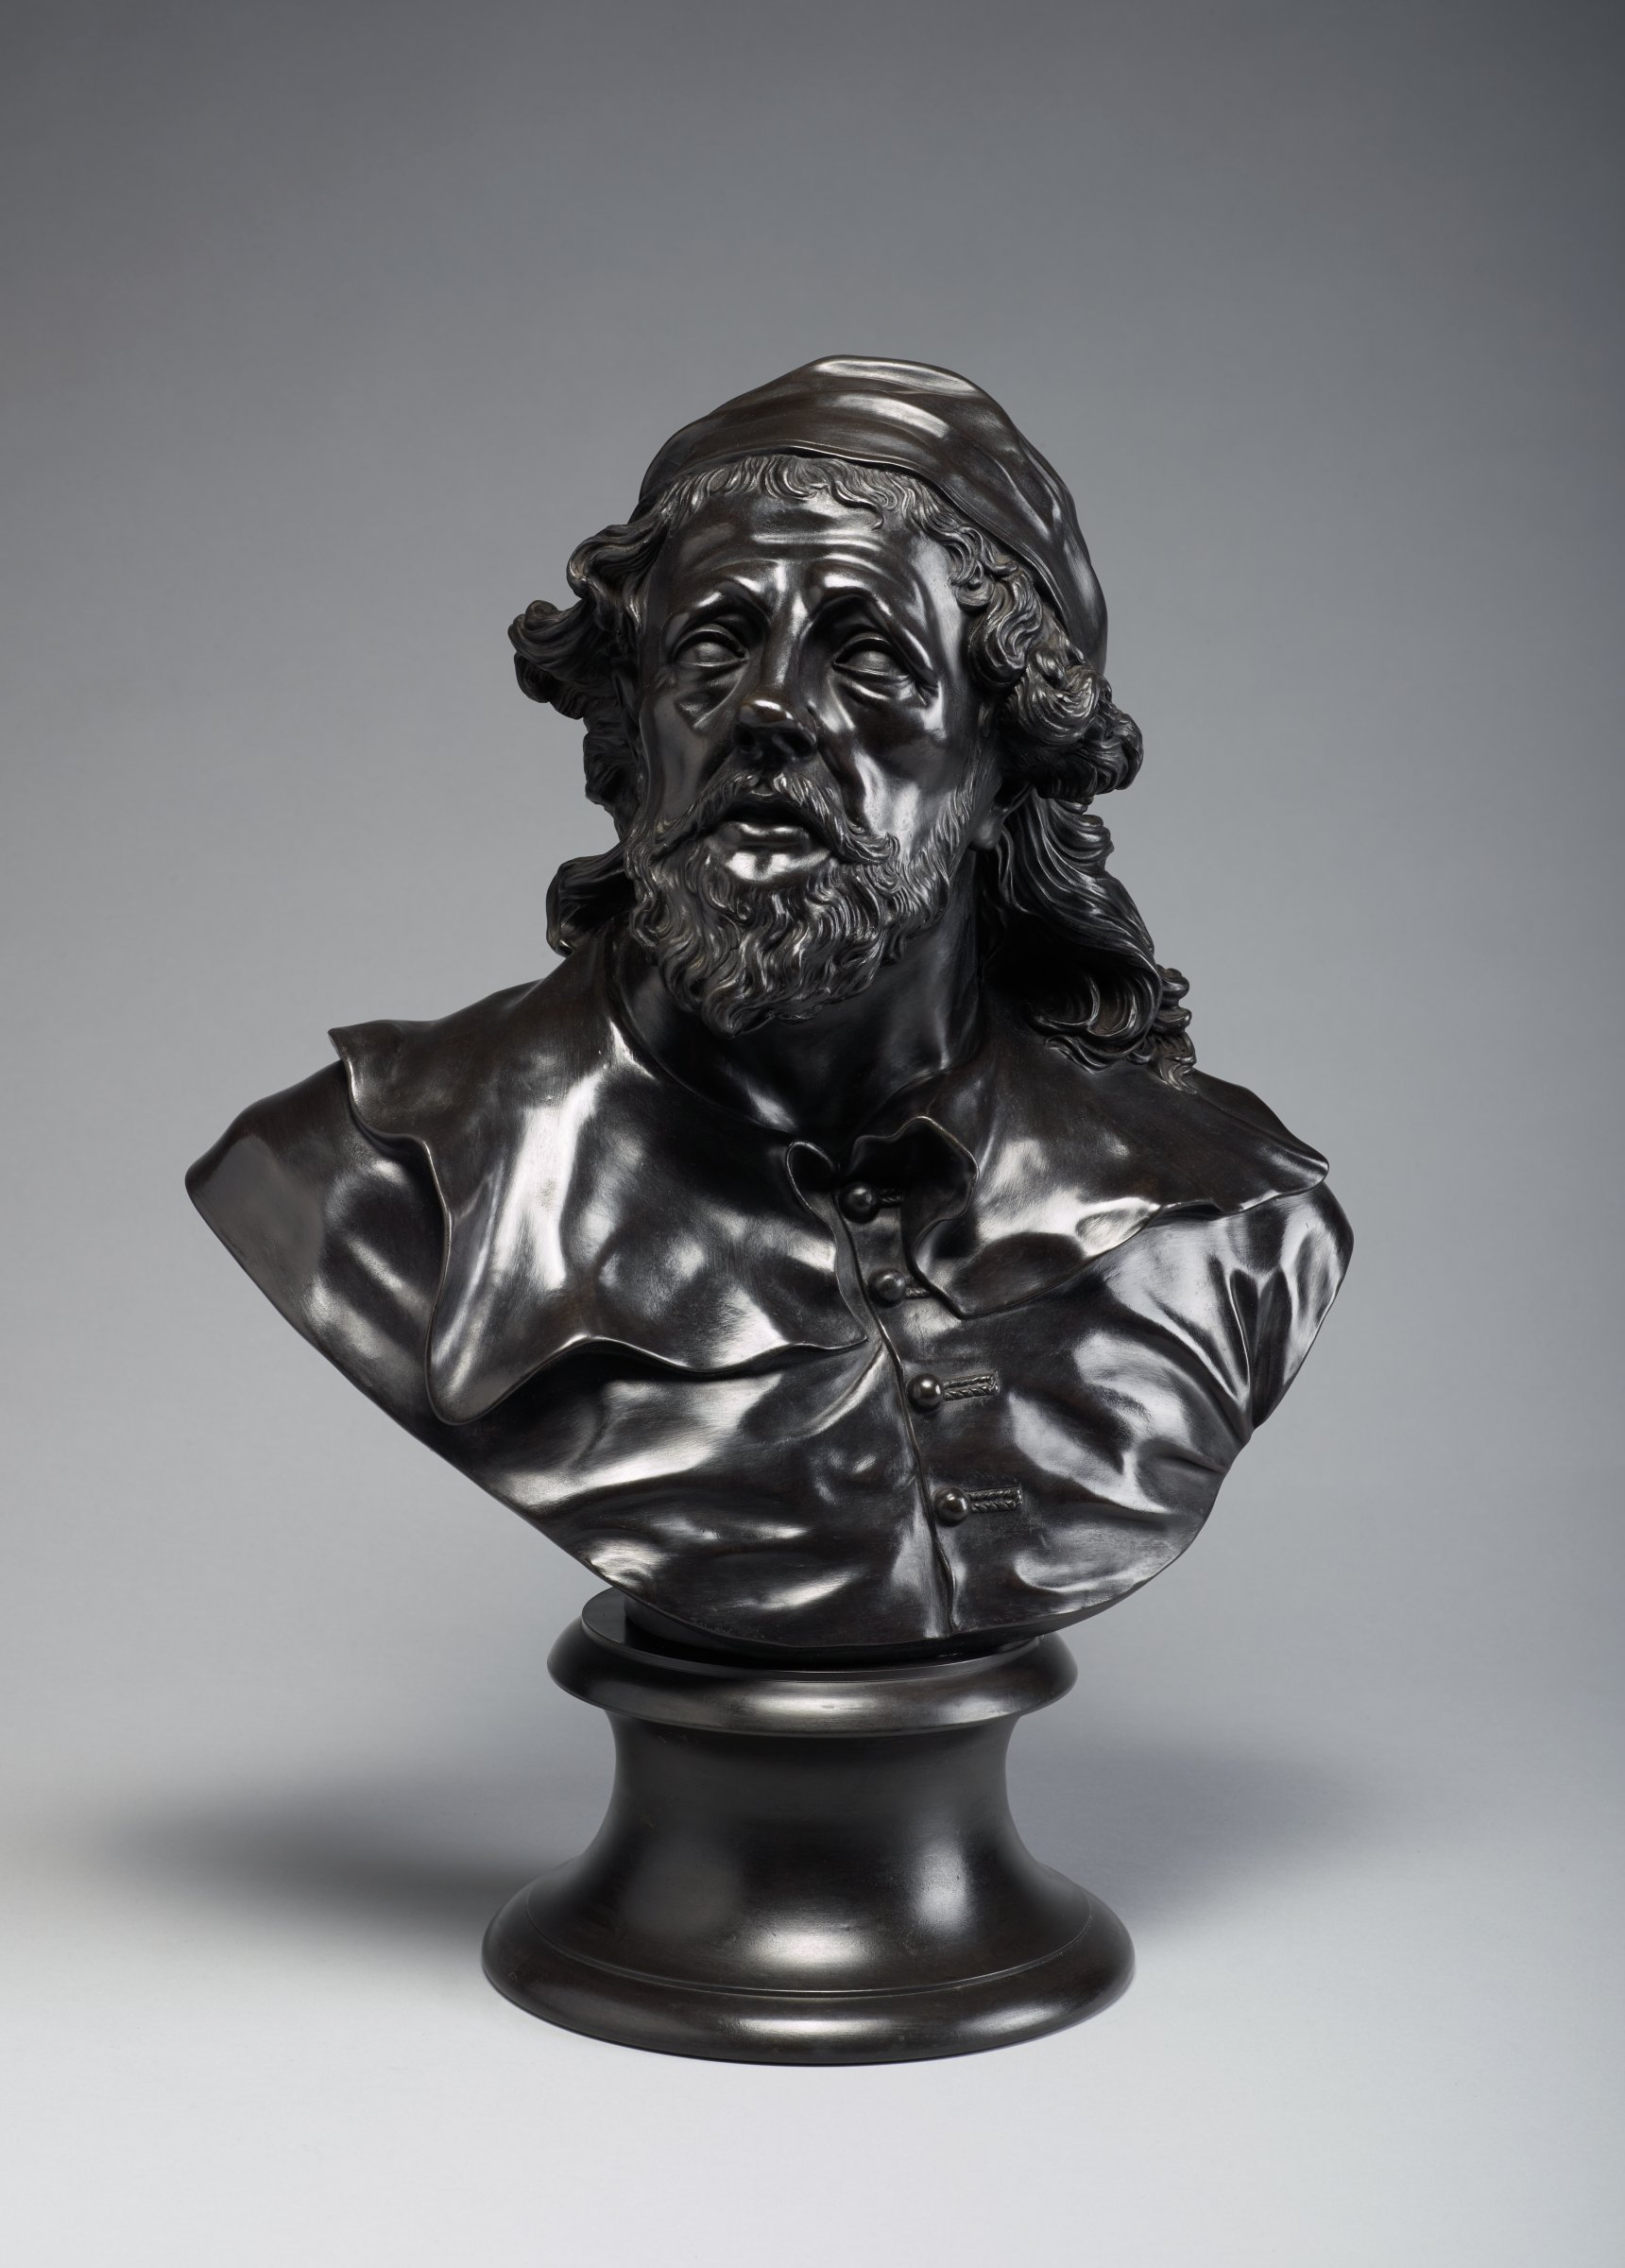 Large library bust of the English architect Inigo Jones in black basalt, bearded and with long hair, his head turned slightly left and his lips parted, with skull cap and buttoned waistcoat with wide collar, on round pedestal.